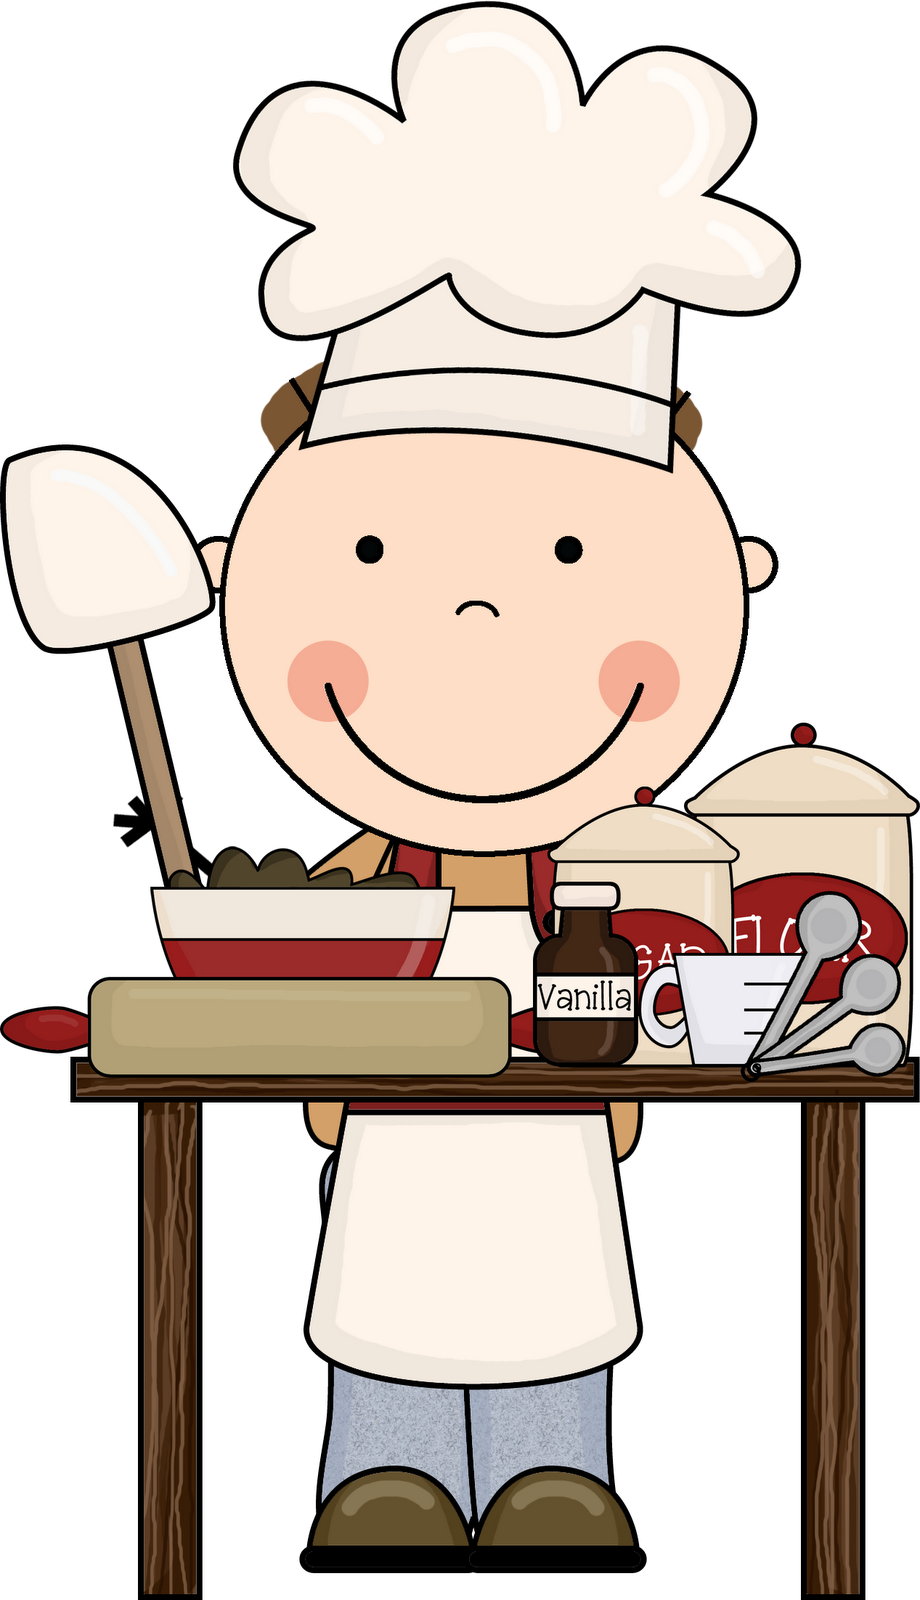 Sample image from scrappindoodles. Kindergarten clipart kitchen